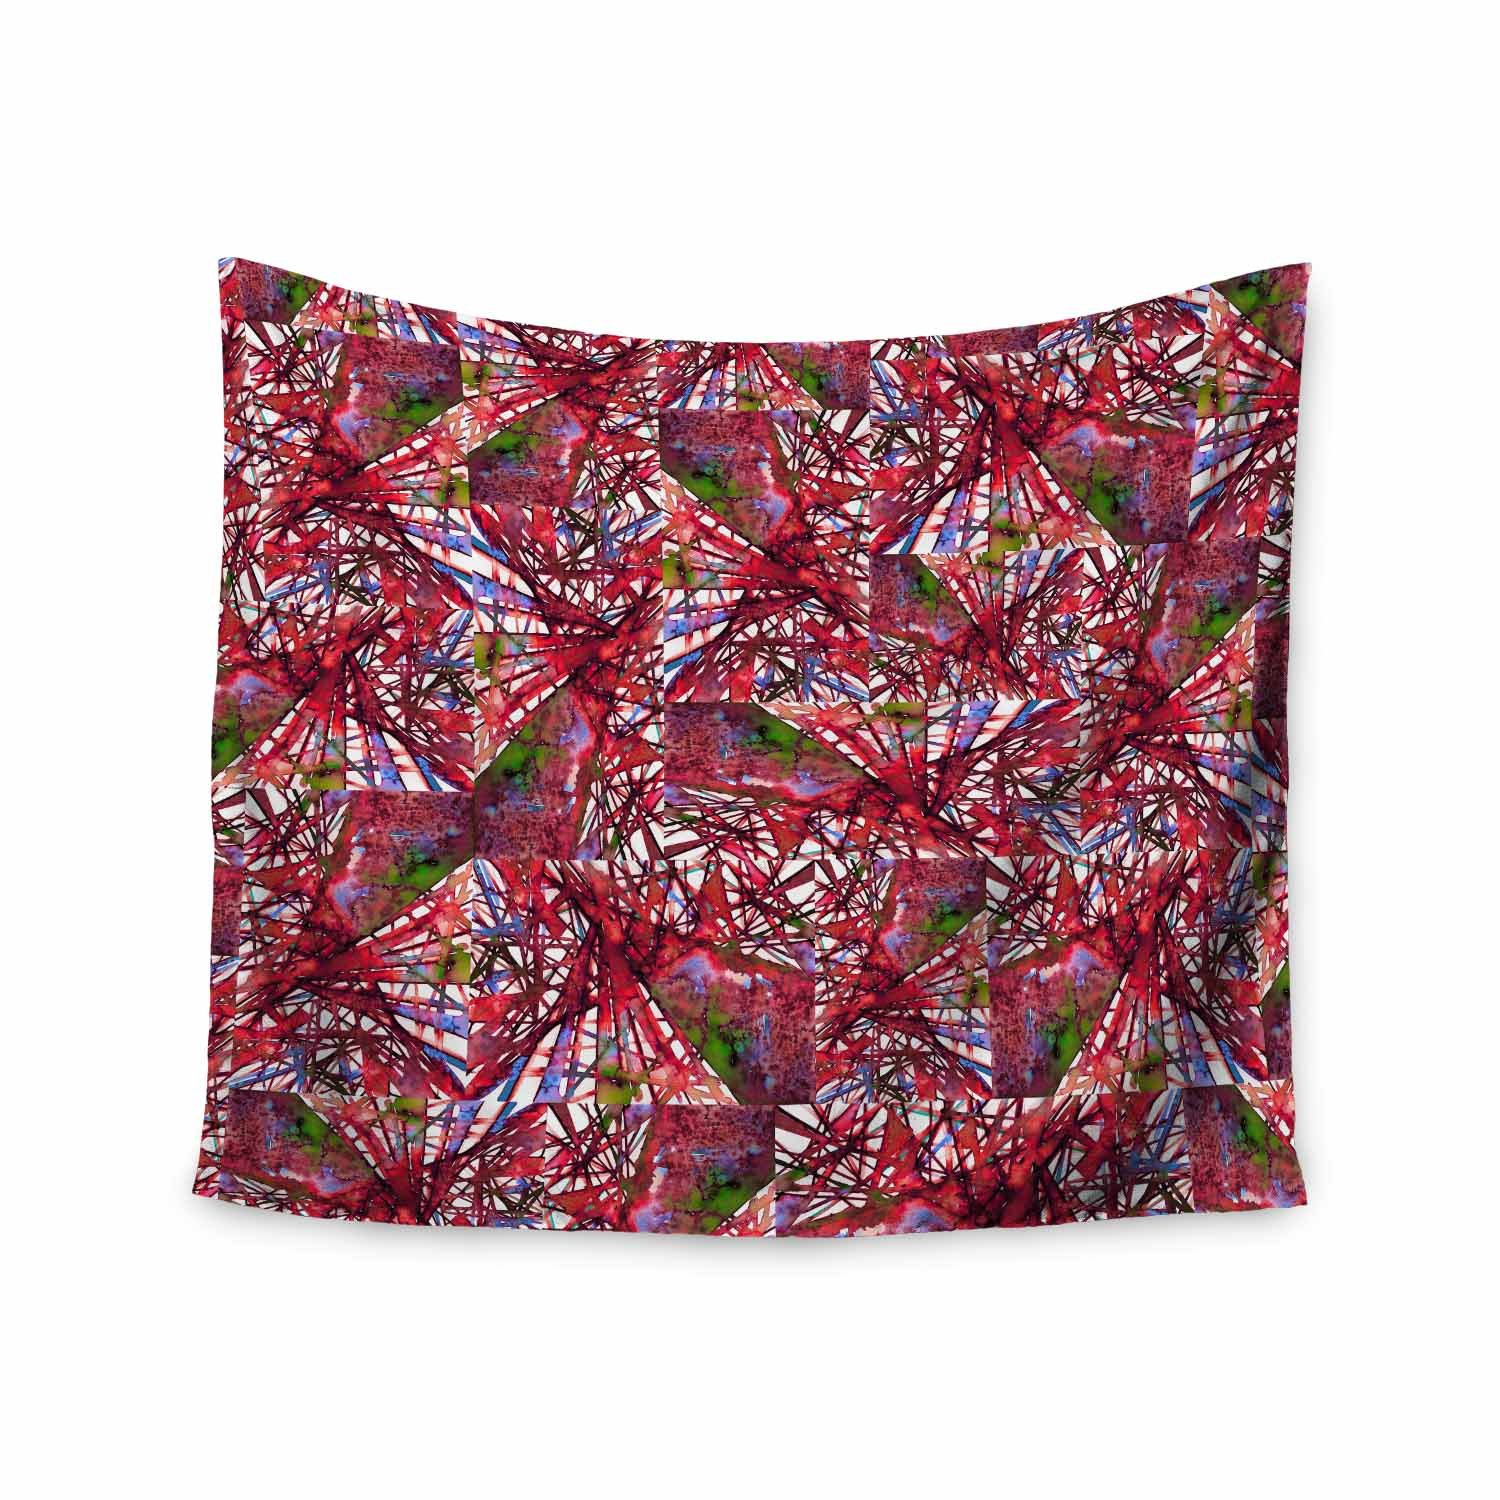 Kess InHouse EBI Emporium New Directions, Very Cherry Red Lavender Pattern Geometric Mixed Media Painting Wall Tapestry